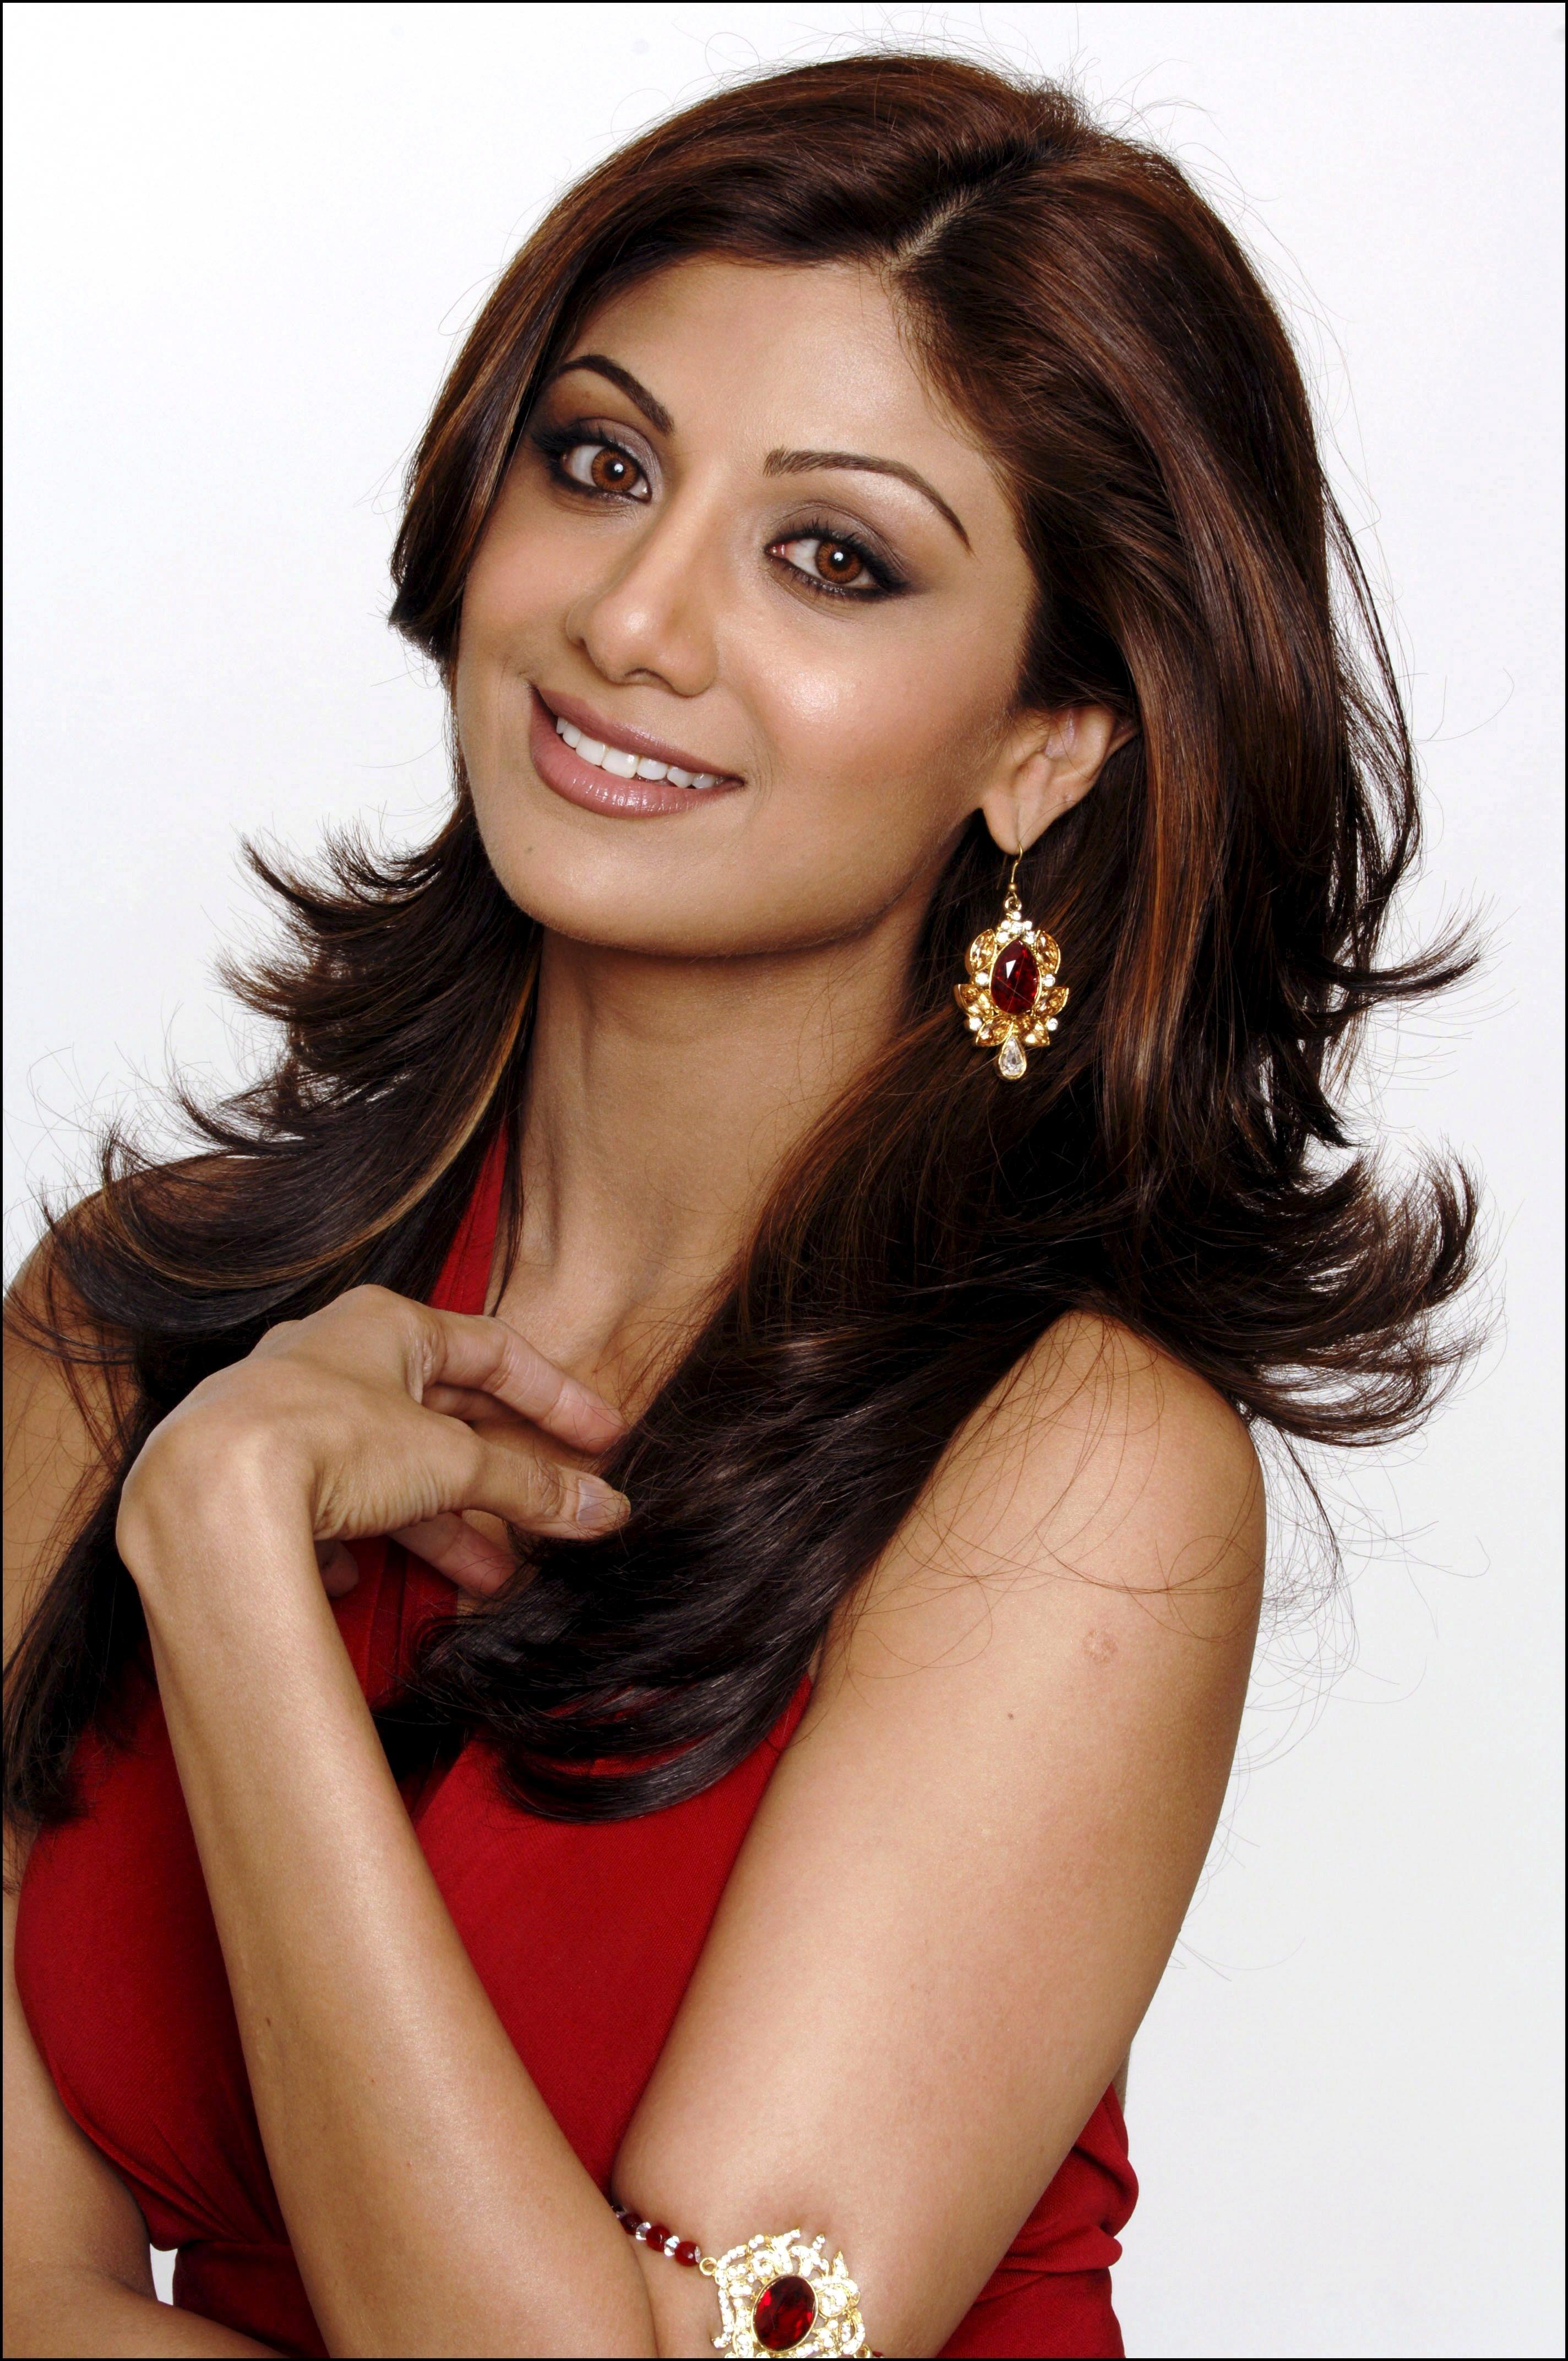 http://pictures.platinum-celebs.com/shilpa-shetty-nude-photo.jpg